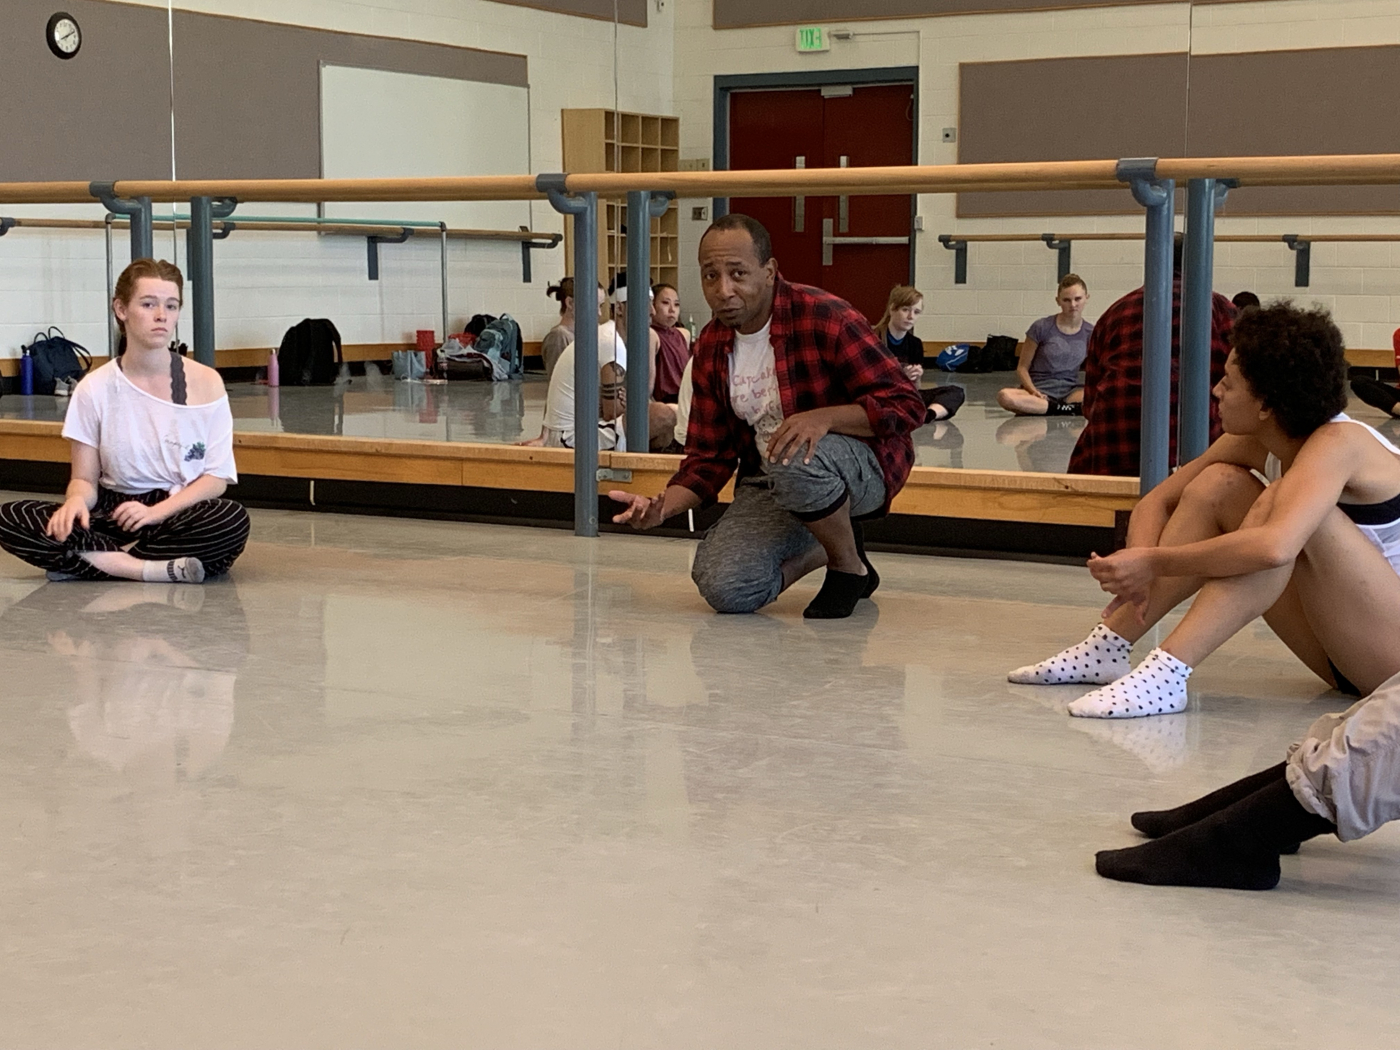 Charles Anderson works with School of Dance students